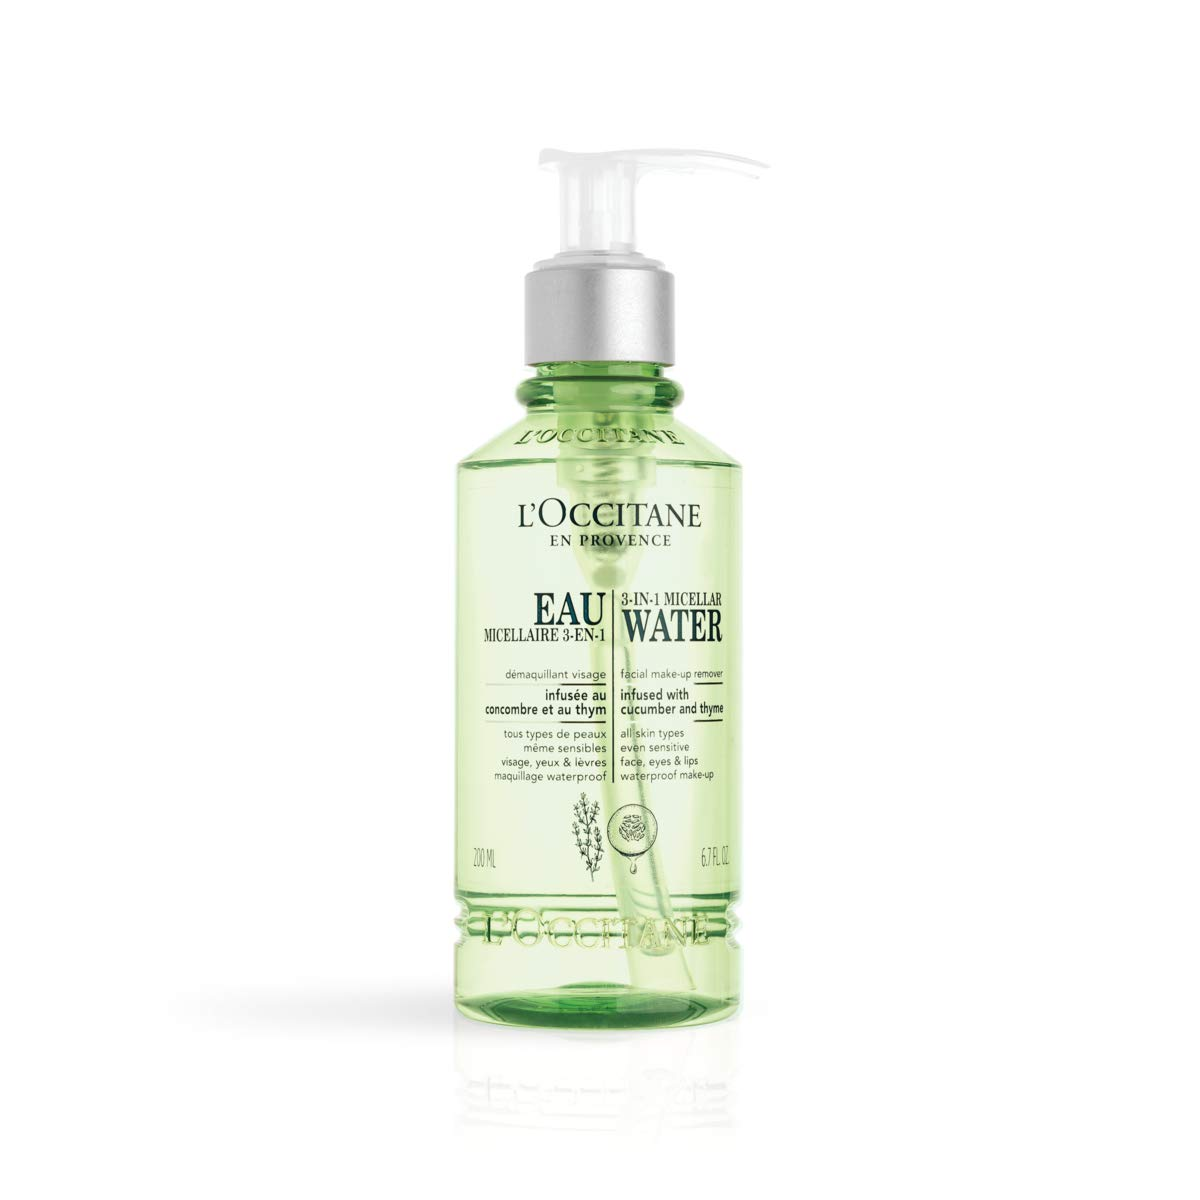 L'Occitane 3-in-1 Micellar Water Large discharge sale Makeup Fl Oz 6.7 Ranking TOP8 Remover